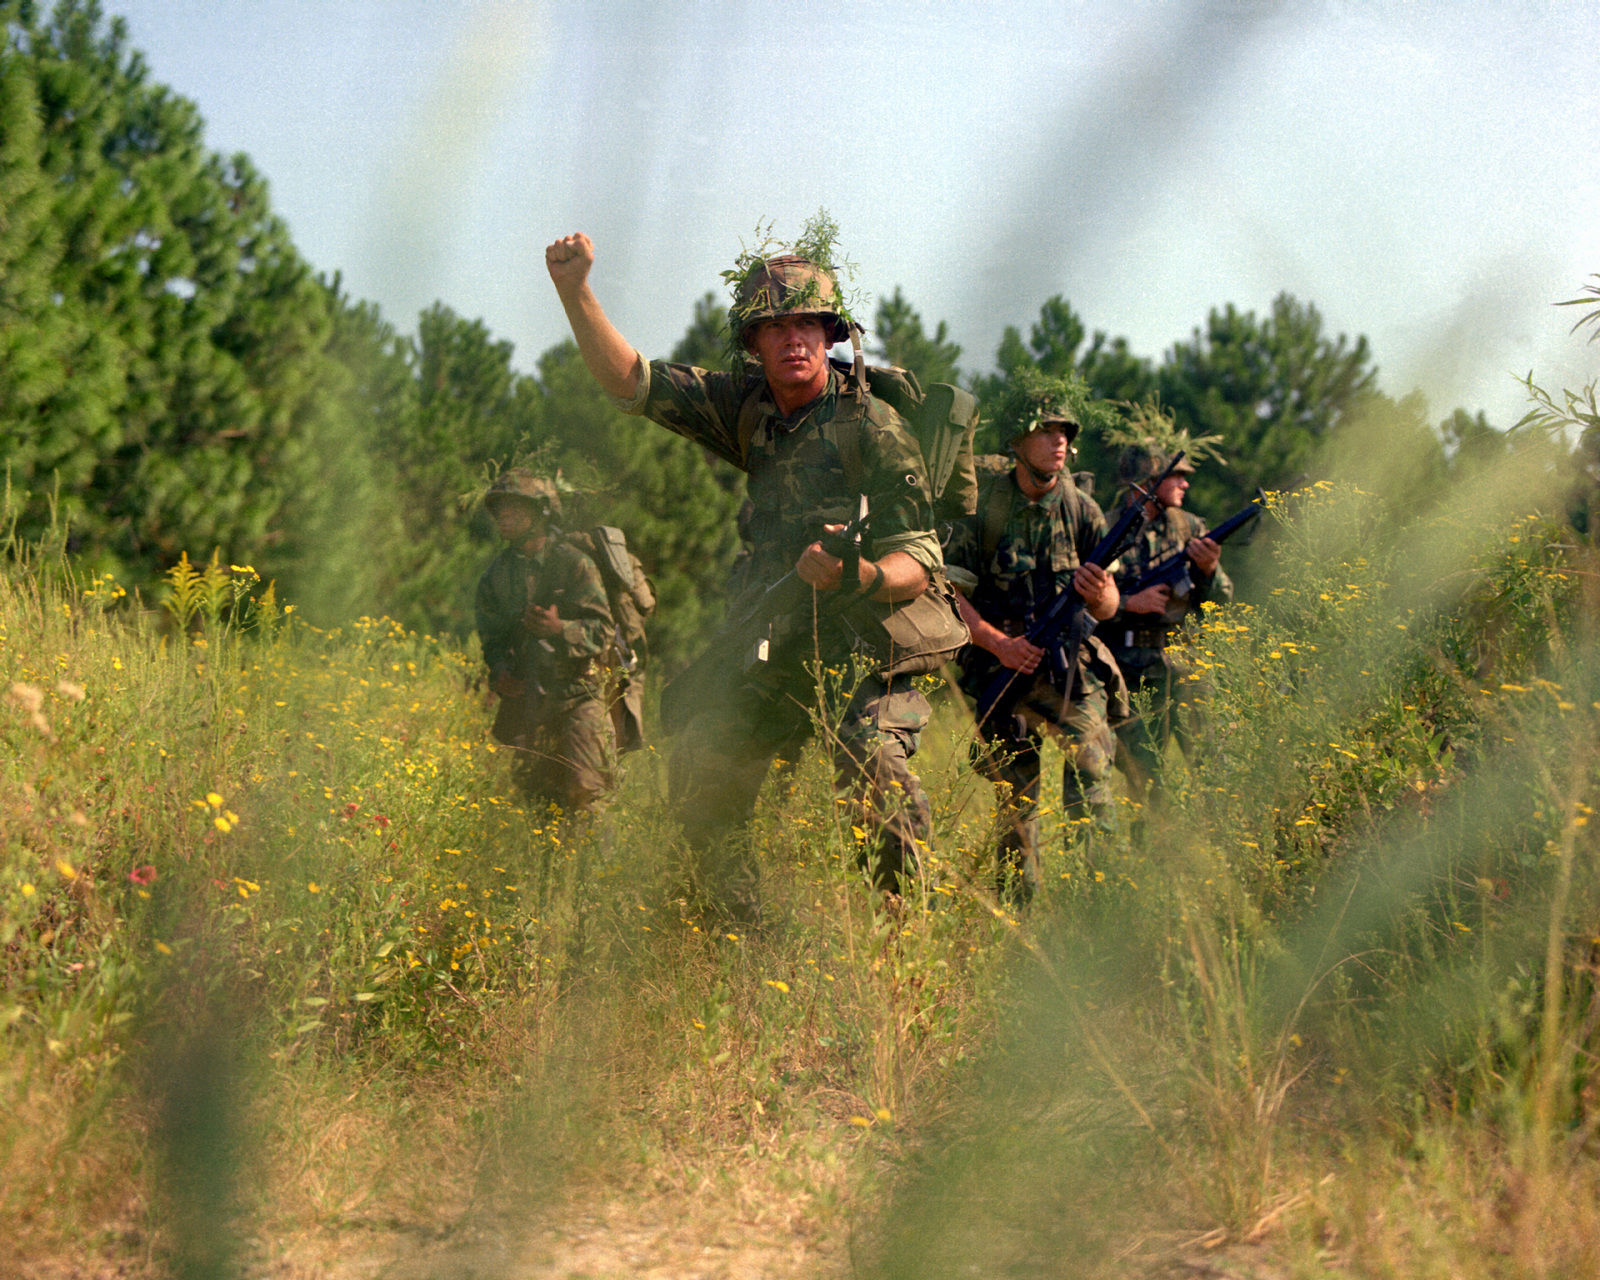 the fire team leader gives the hand signal to halt during a field